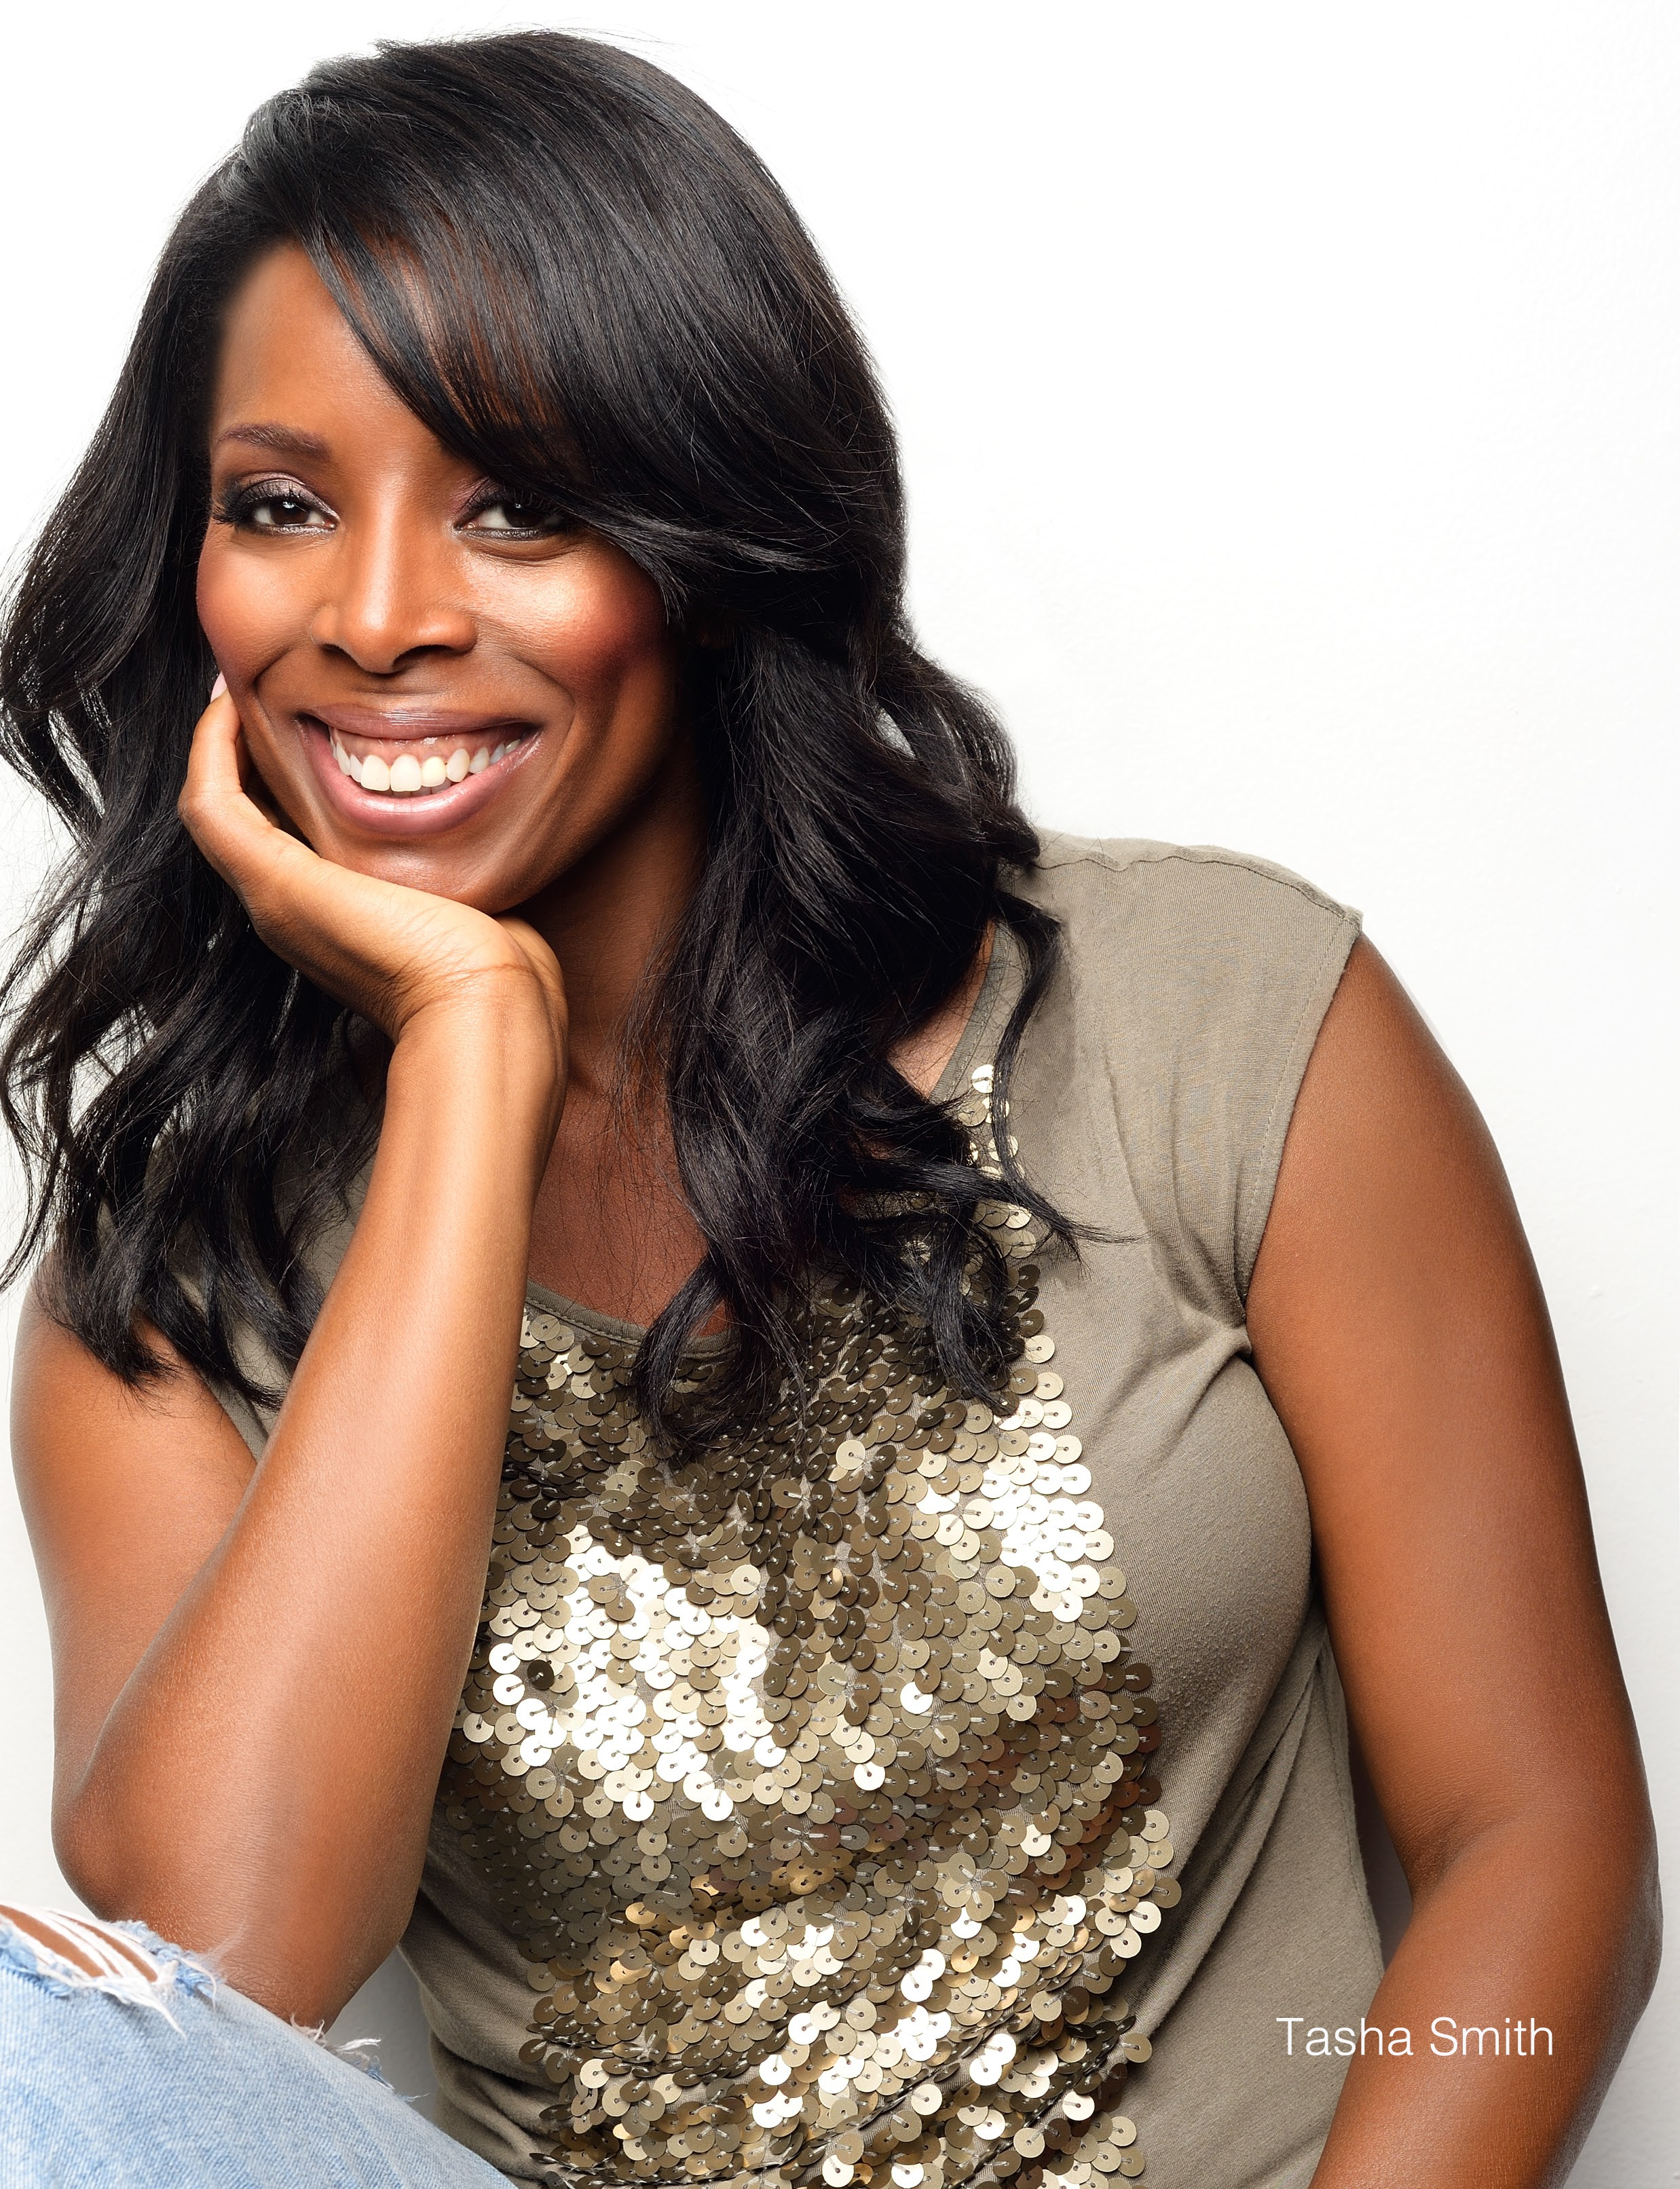 Tasha Smith October 2013.jpg